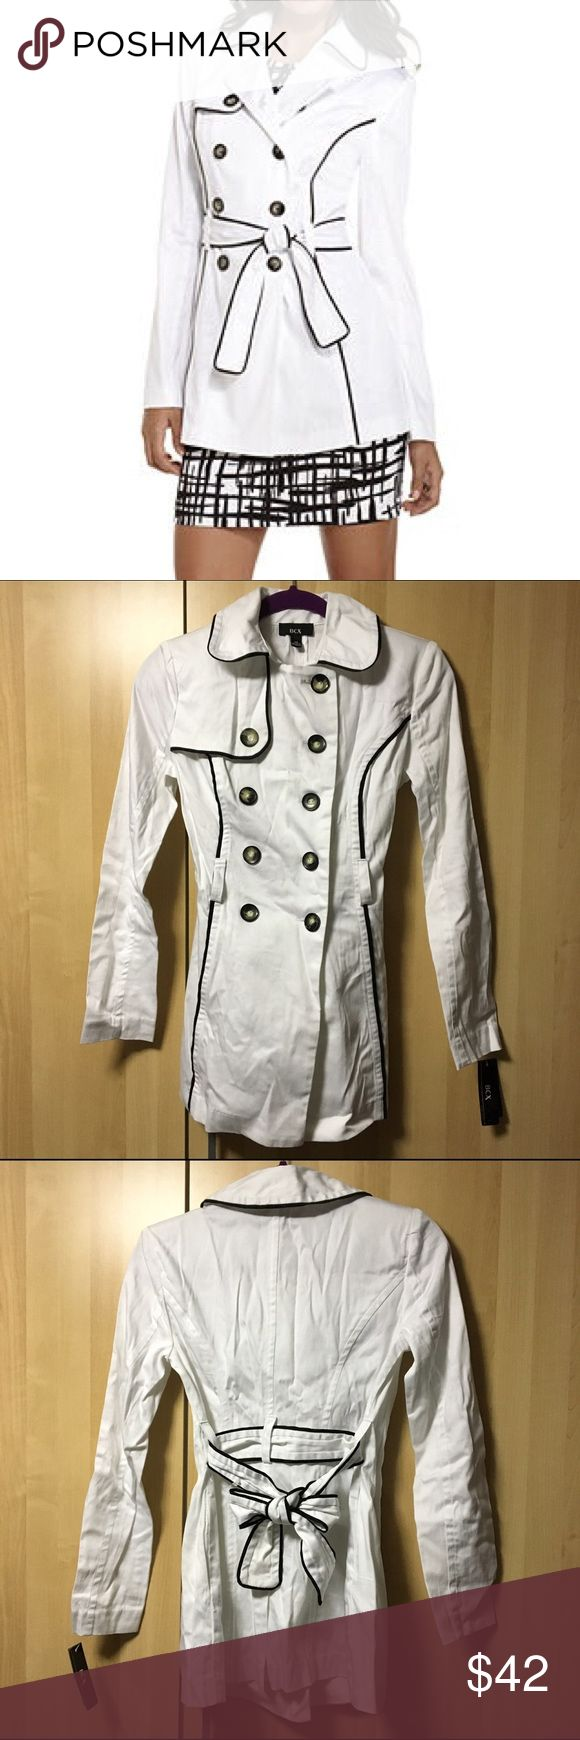 🎉Sale🎉 Lightweight Trench Coat A white lightweight trench coat by BCX with black lining details | Double-breasted long sleeve | Belt included | Looks wrinkly only due to storage | Questions welcomed | Photo 1 credit goes to Pinterest BCX Jackets & Coats Trench Coats